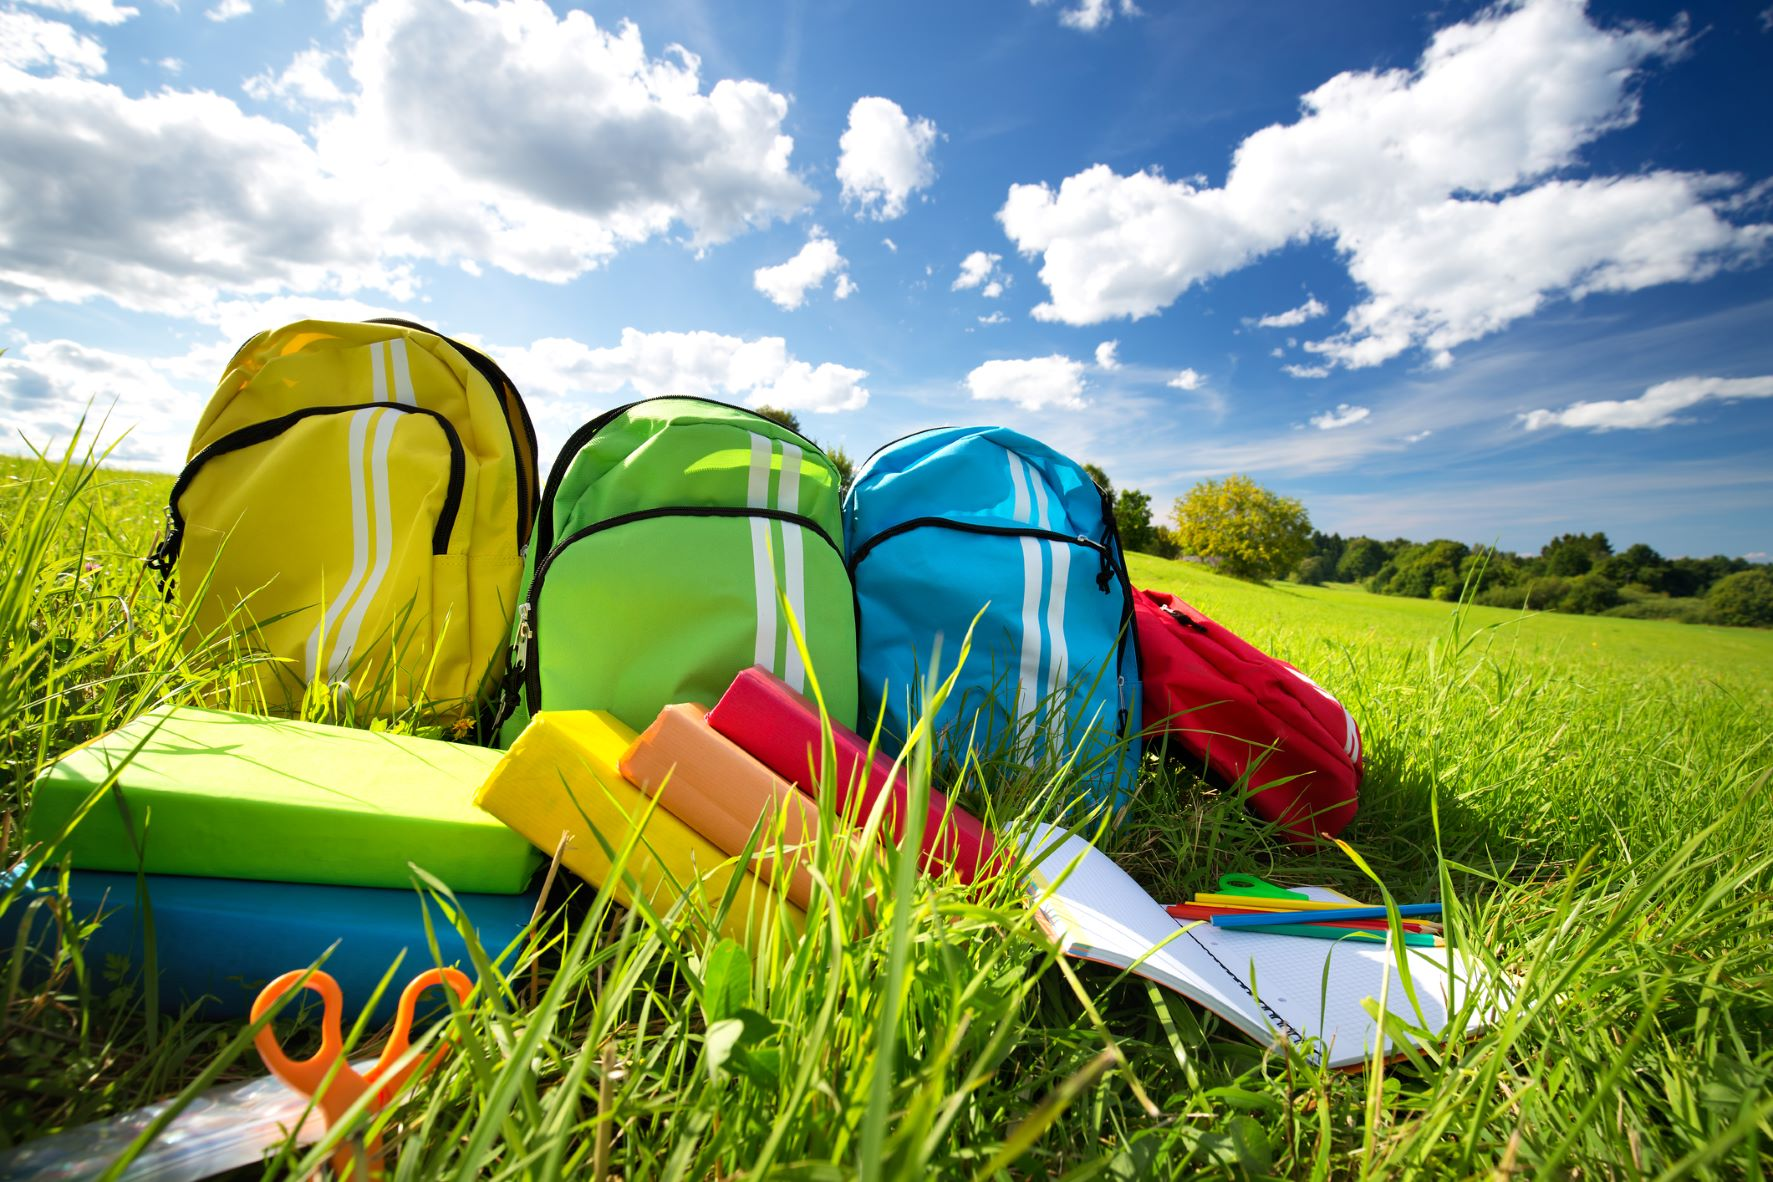 Colorful children schoolbags outdoors on a grassy field with colorfully bound books in the foreground